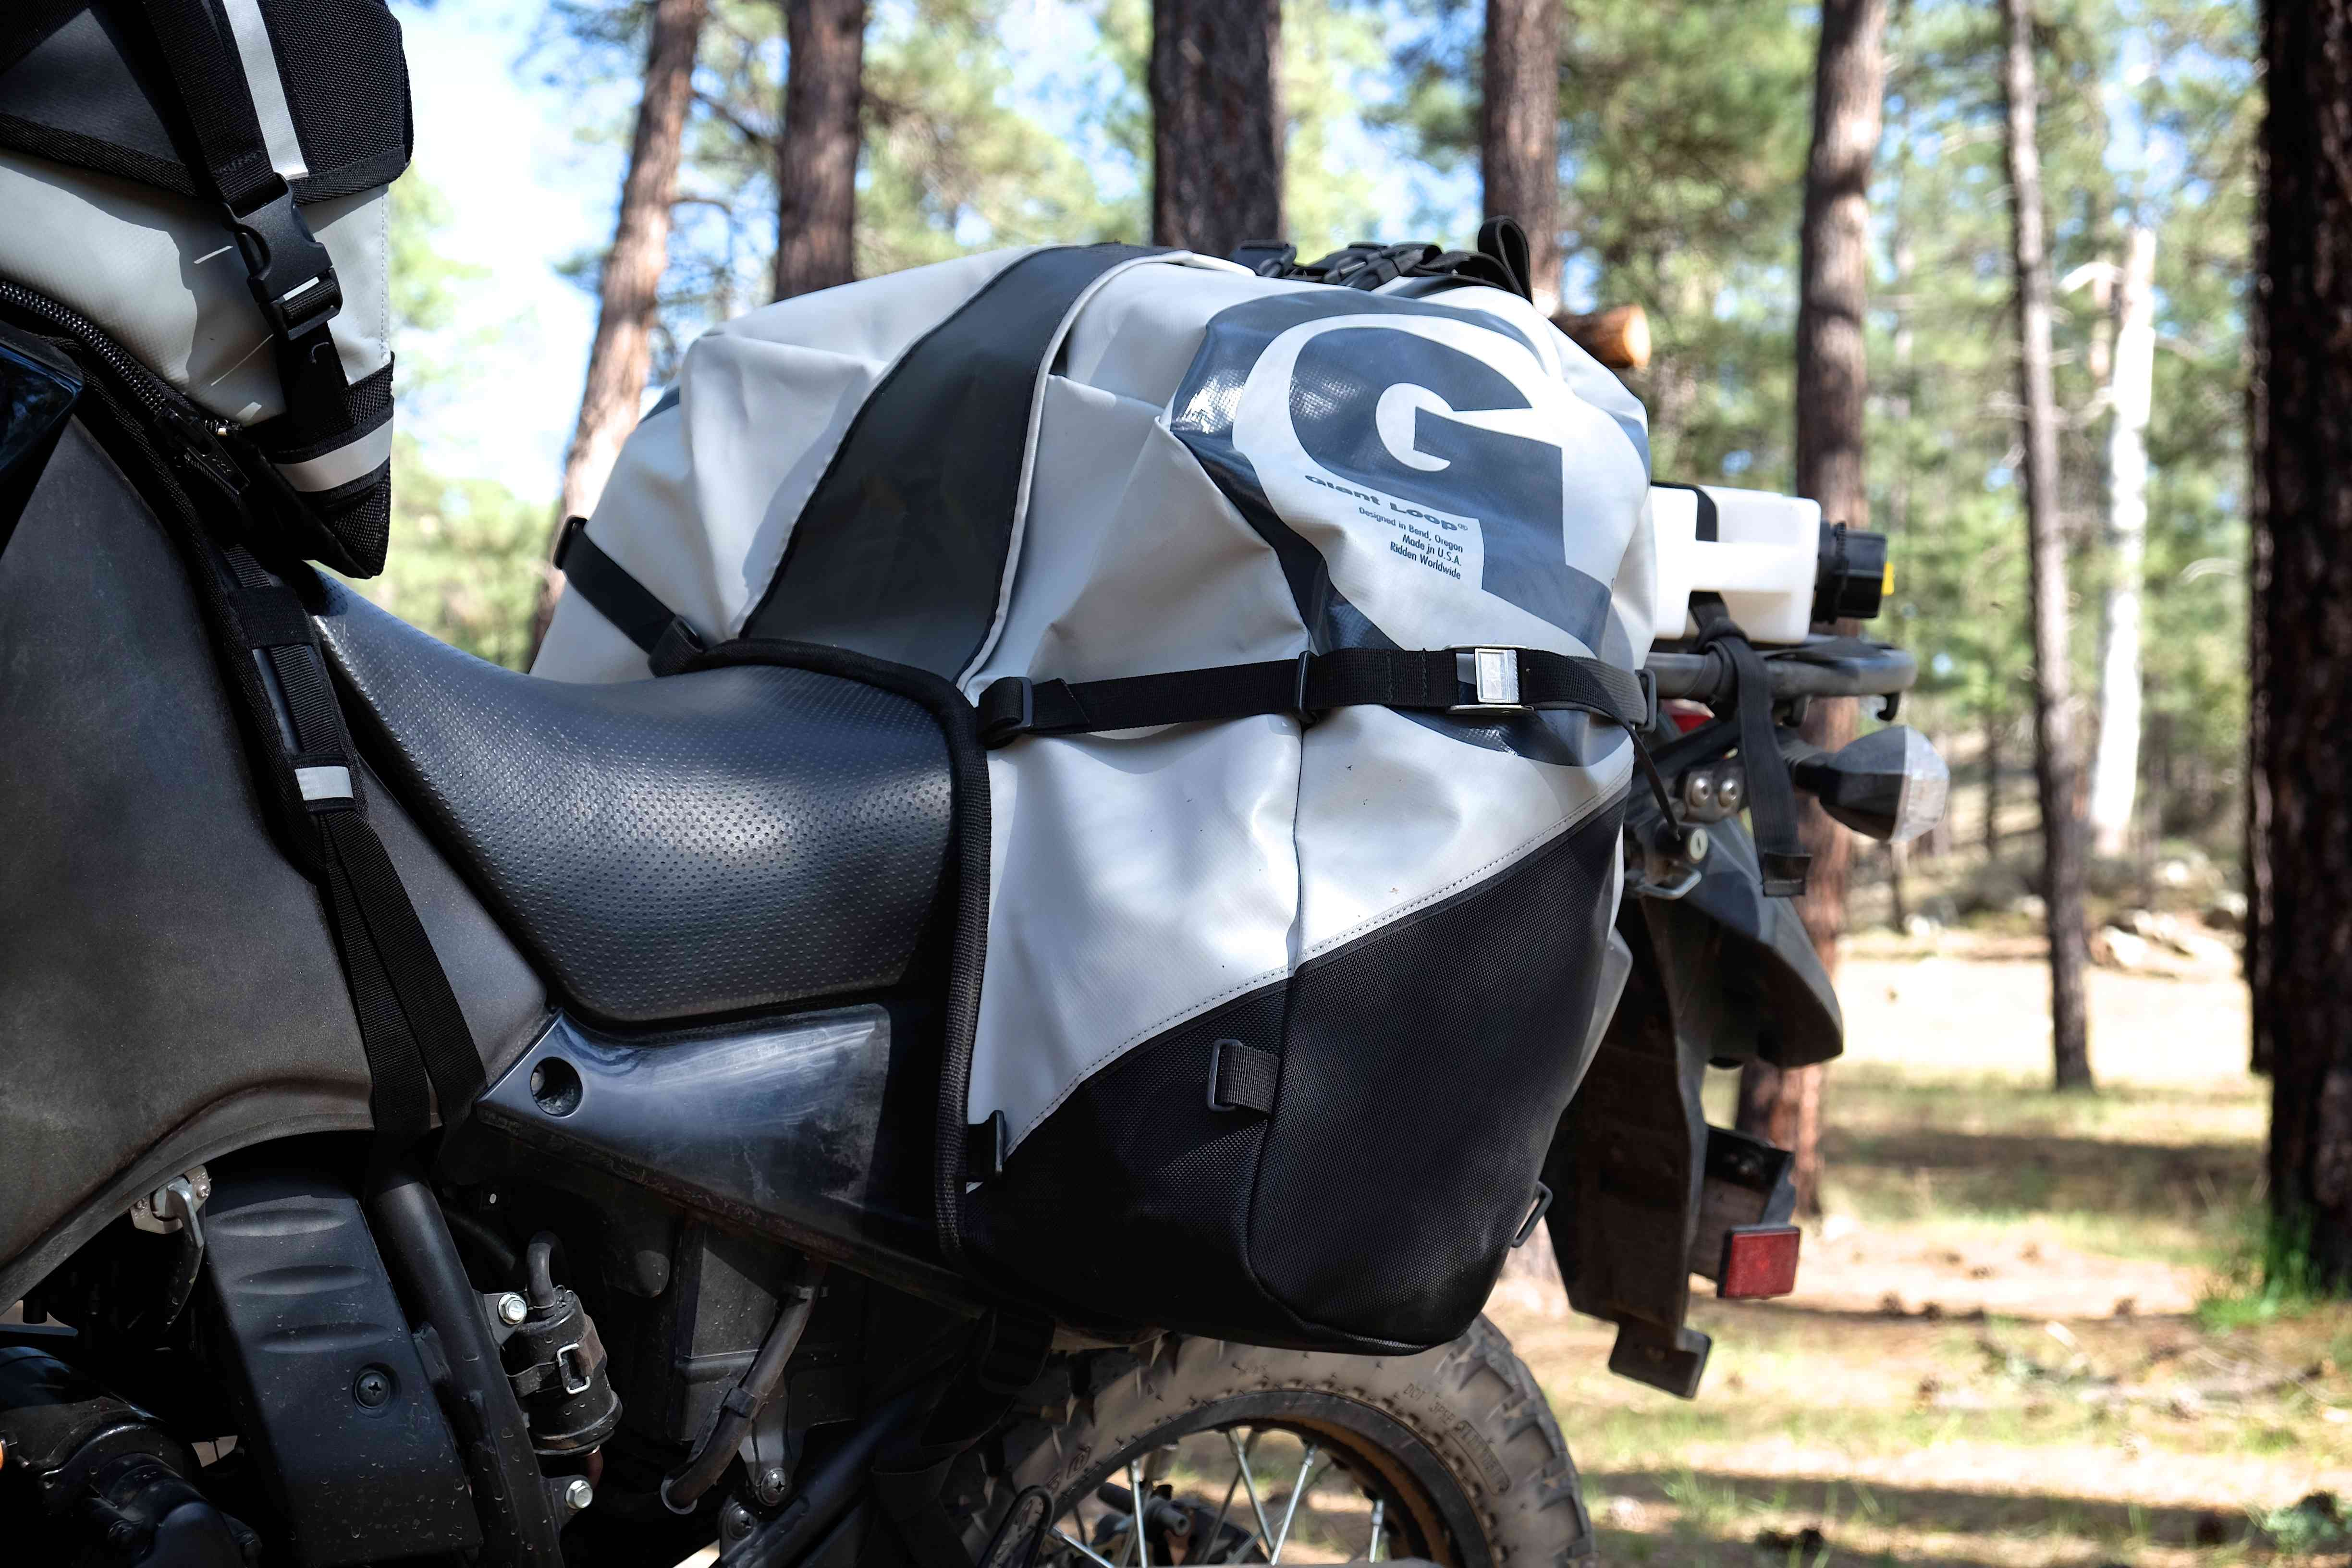 With A Call To Giant Loop We Had Two New Bags On Route And In One Fell Swoop Our Luggage Solution Was Complete